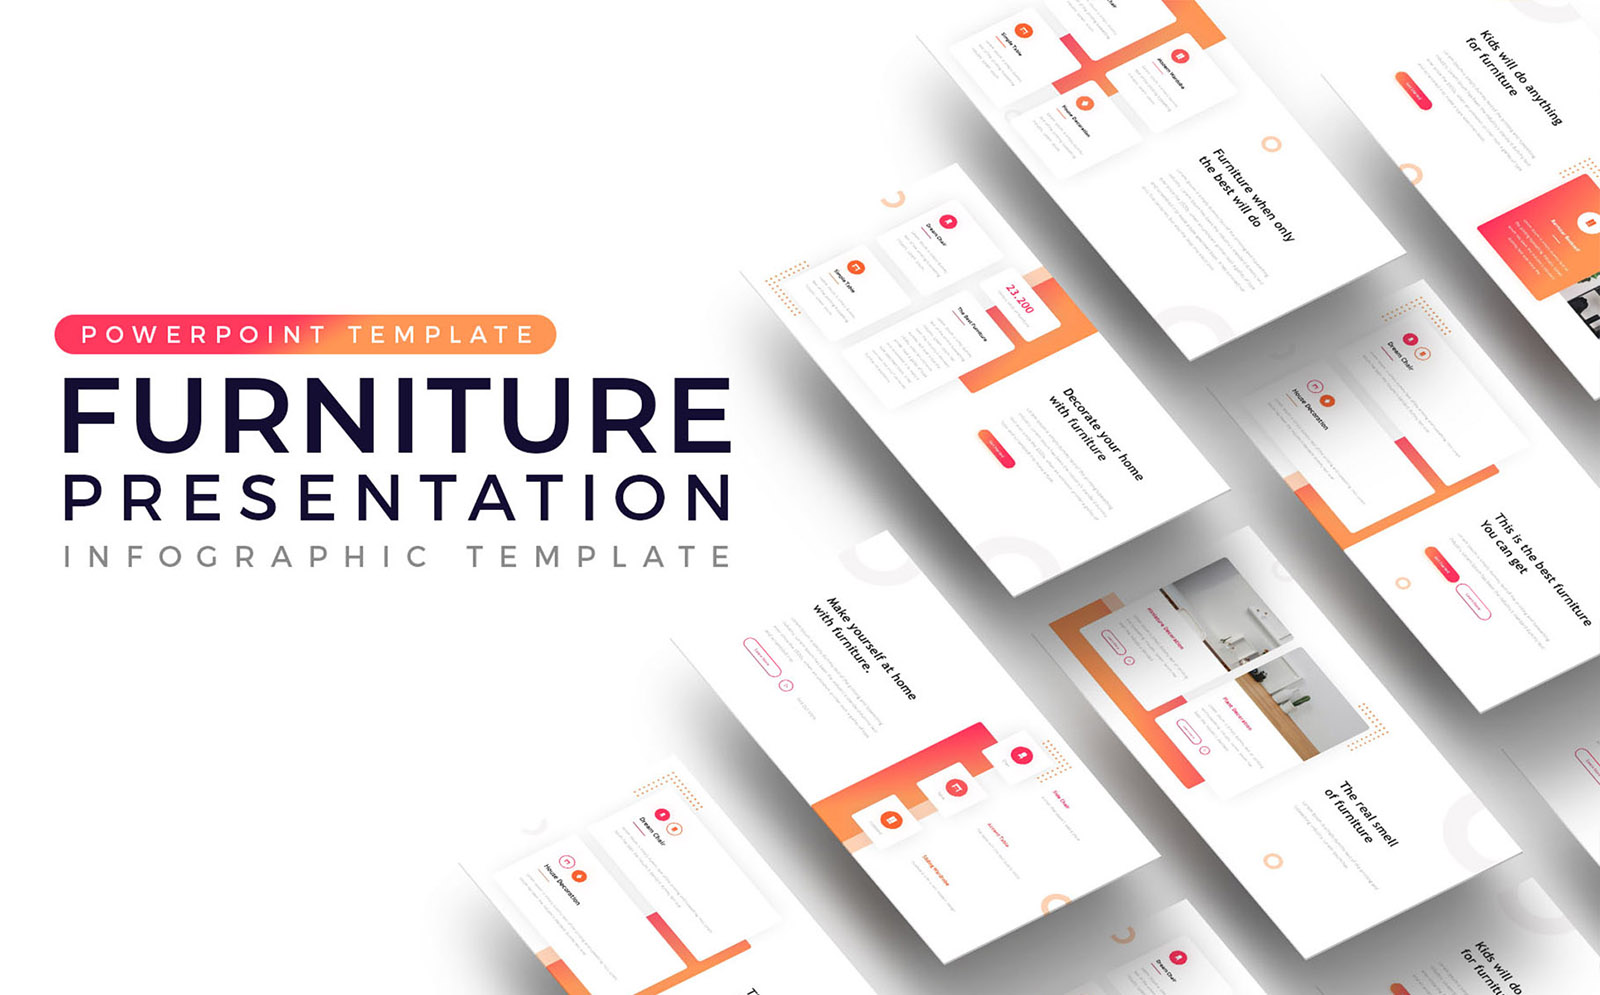 Furniture Presentation PowerPoint Template